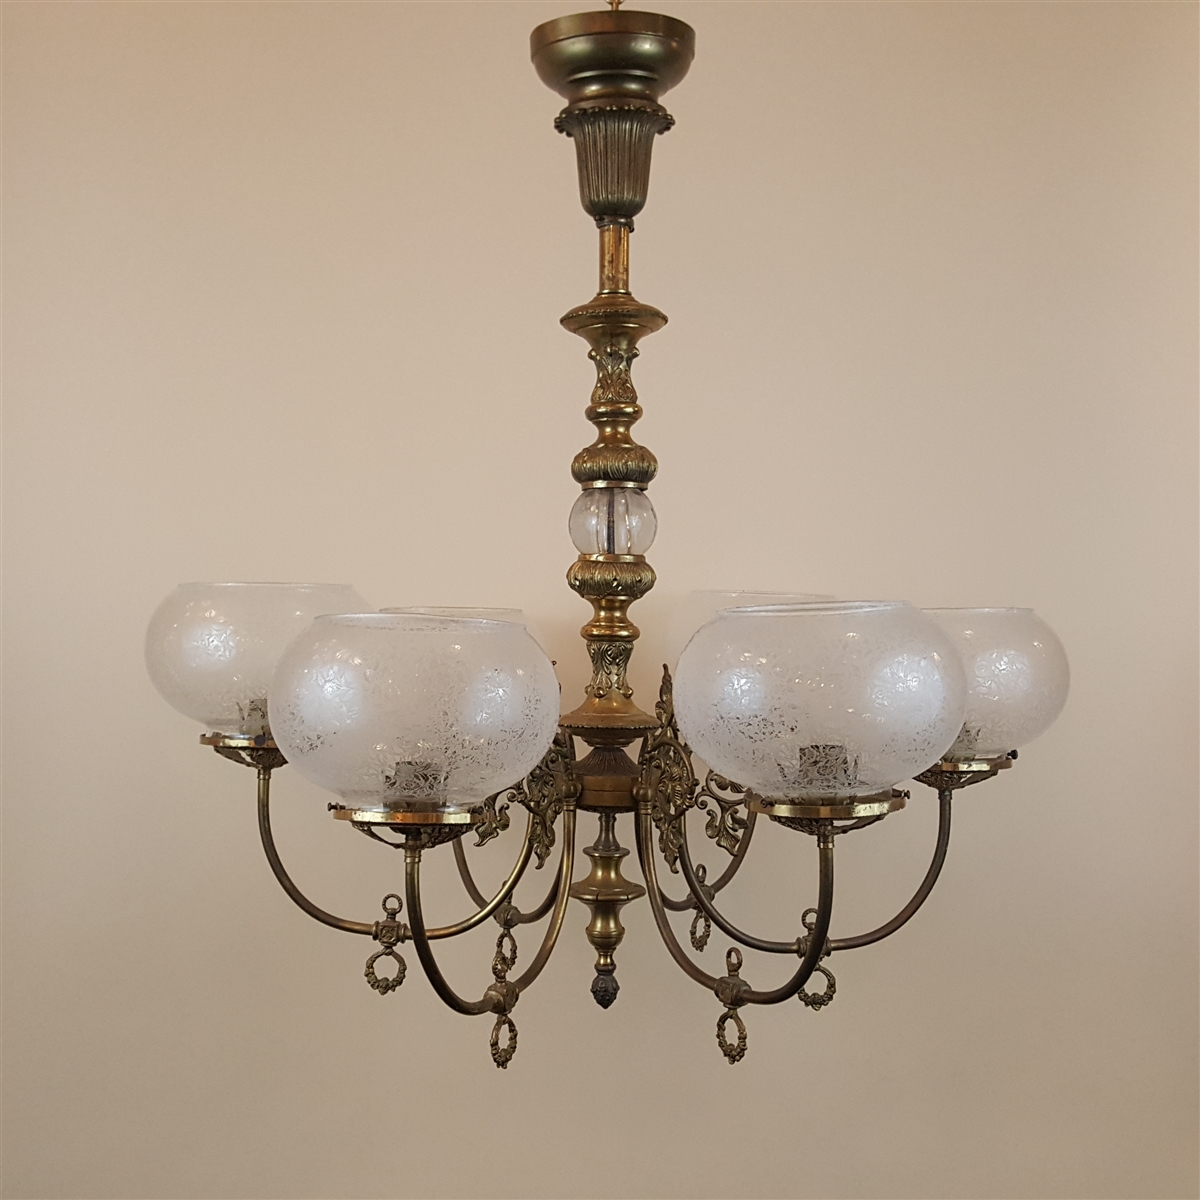 6 arm vintage reproduction gas light sold